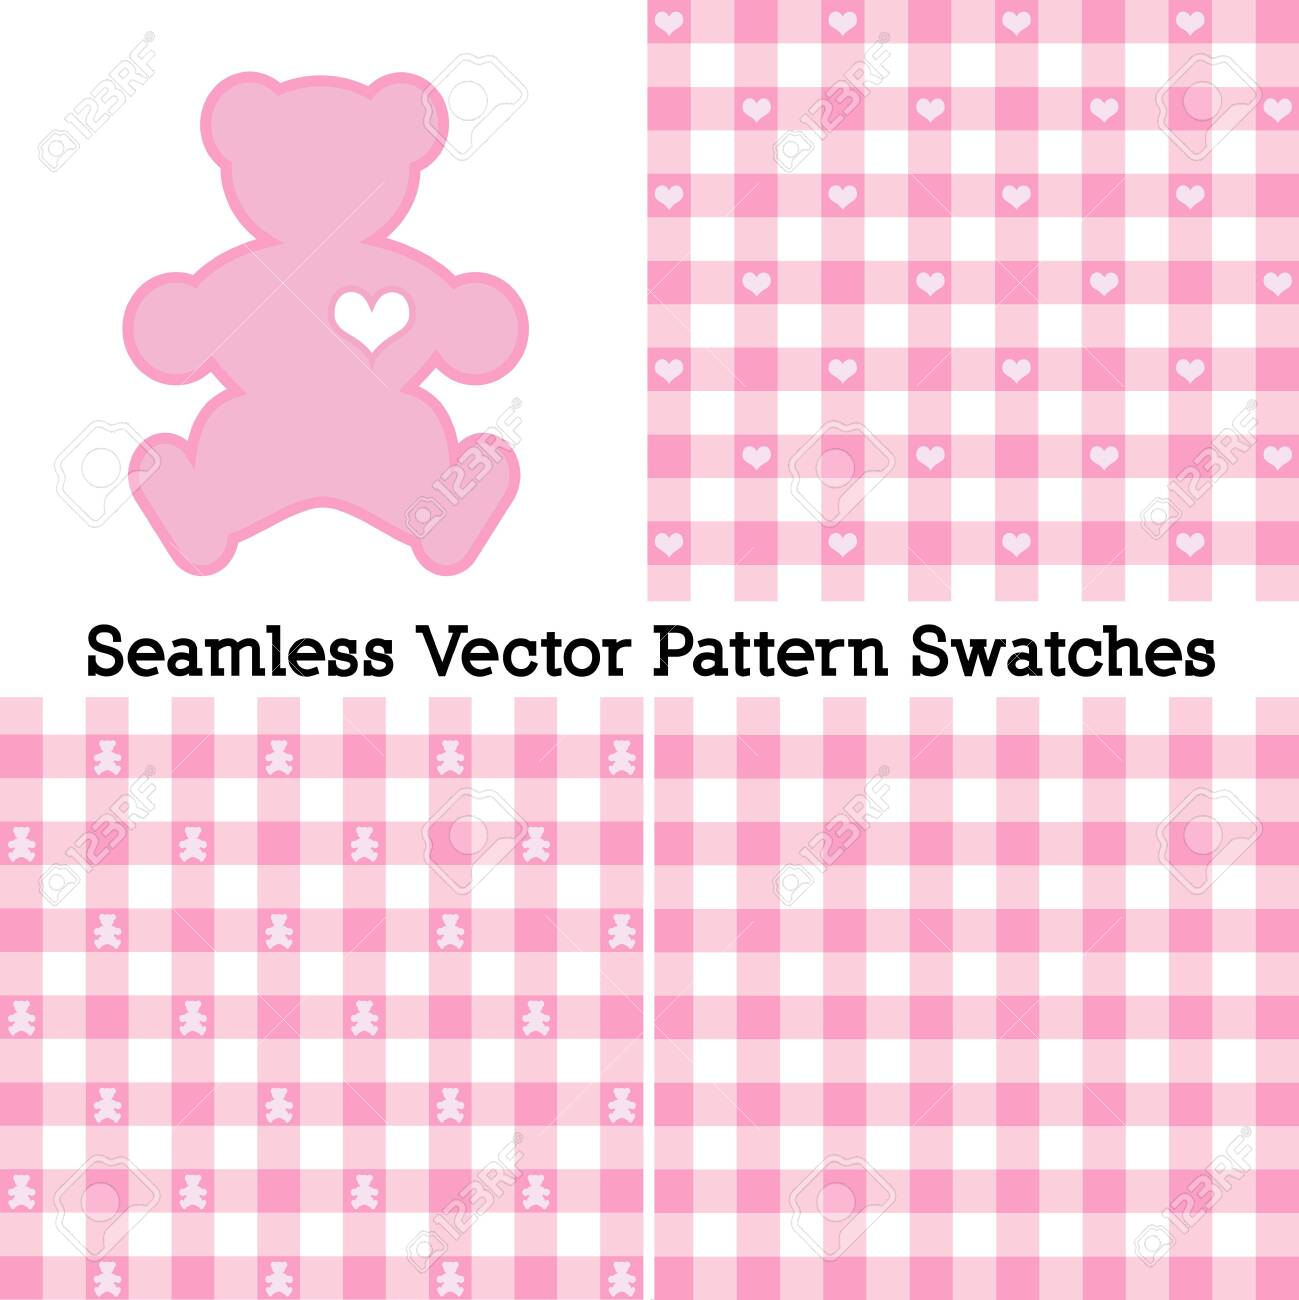 Teddy Bear with a big heart, pastel pink gingham check seamless patterns in three designs. - 130224492